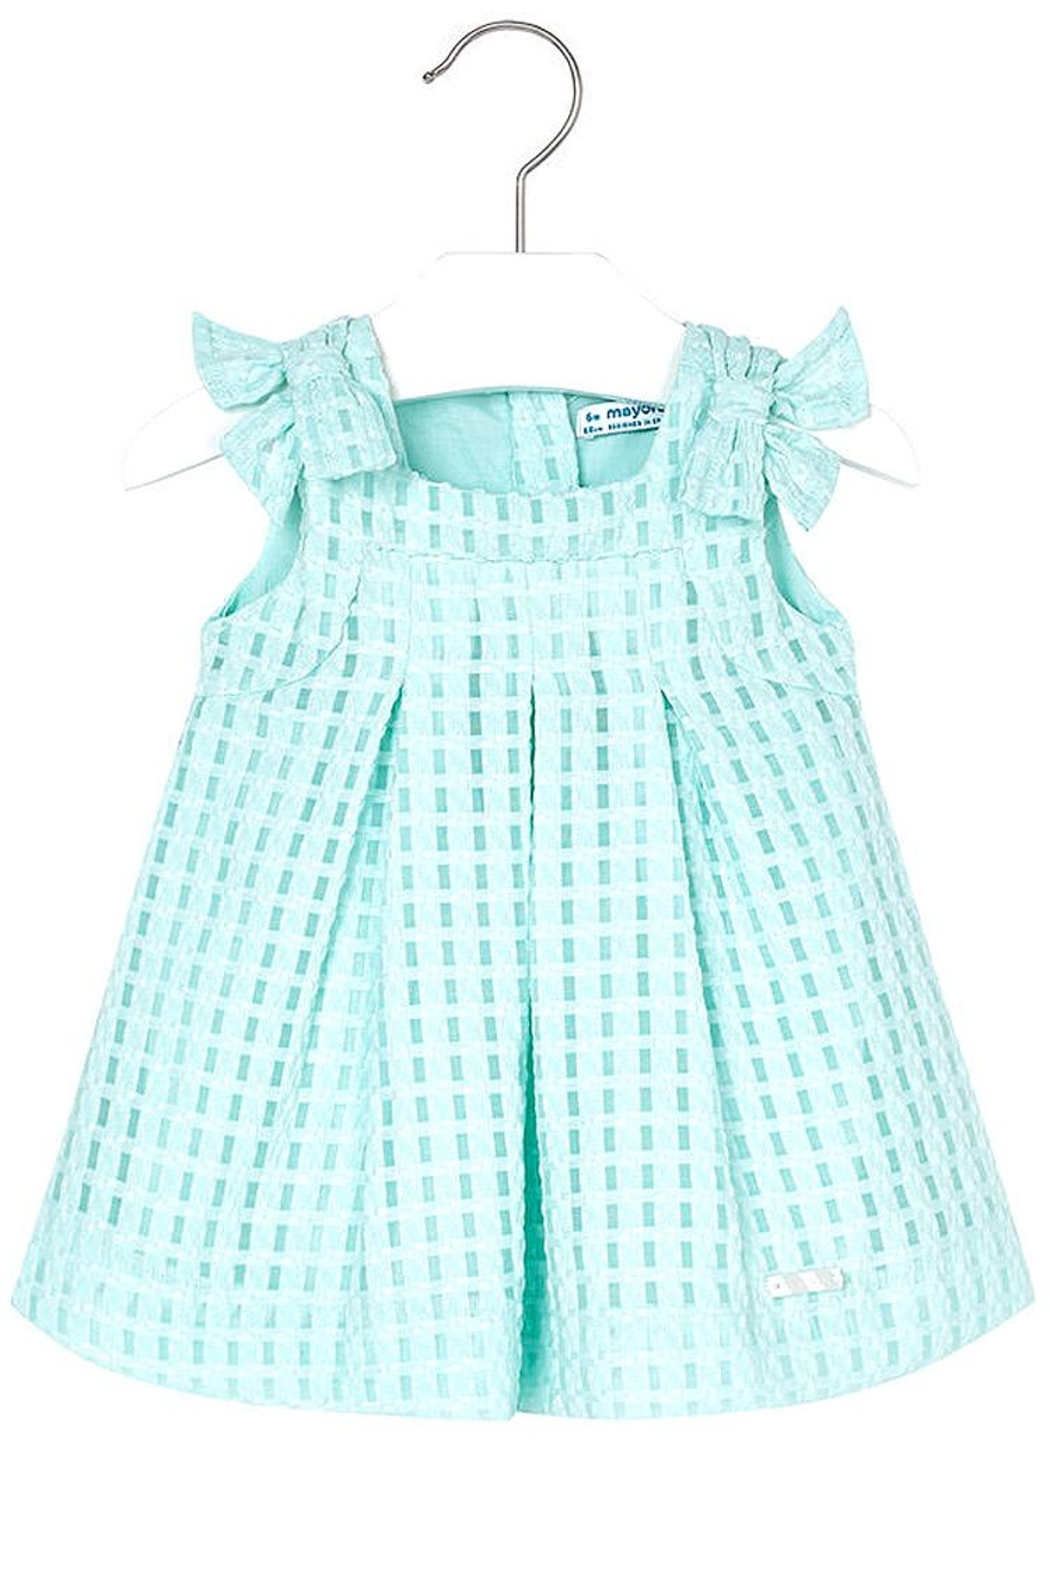 Mayoral Mini Turquoise Basket-Weave-Dress - Front Cropped Image